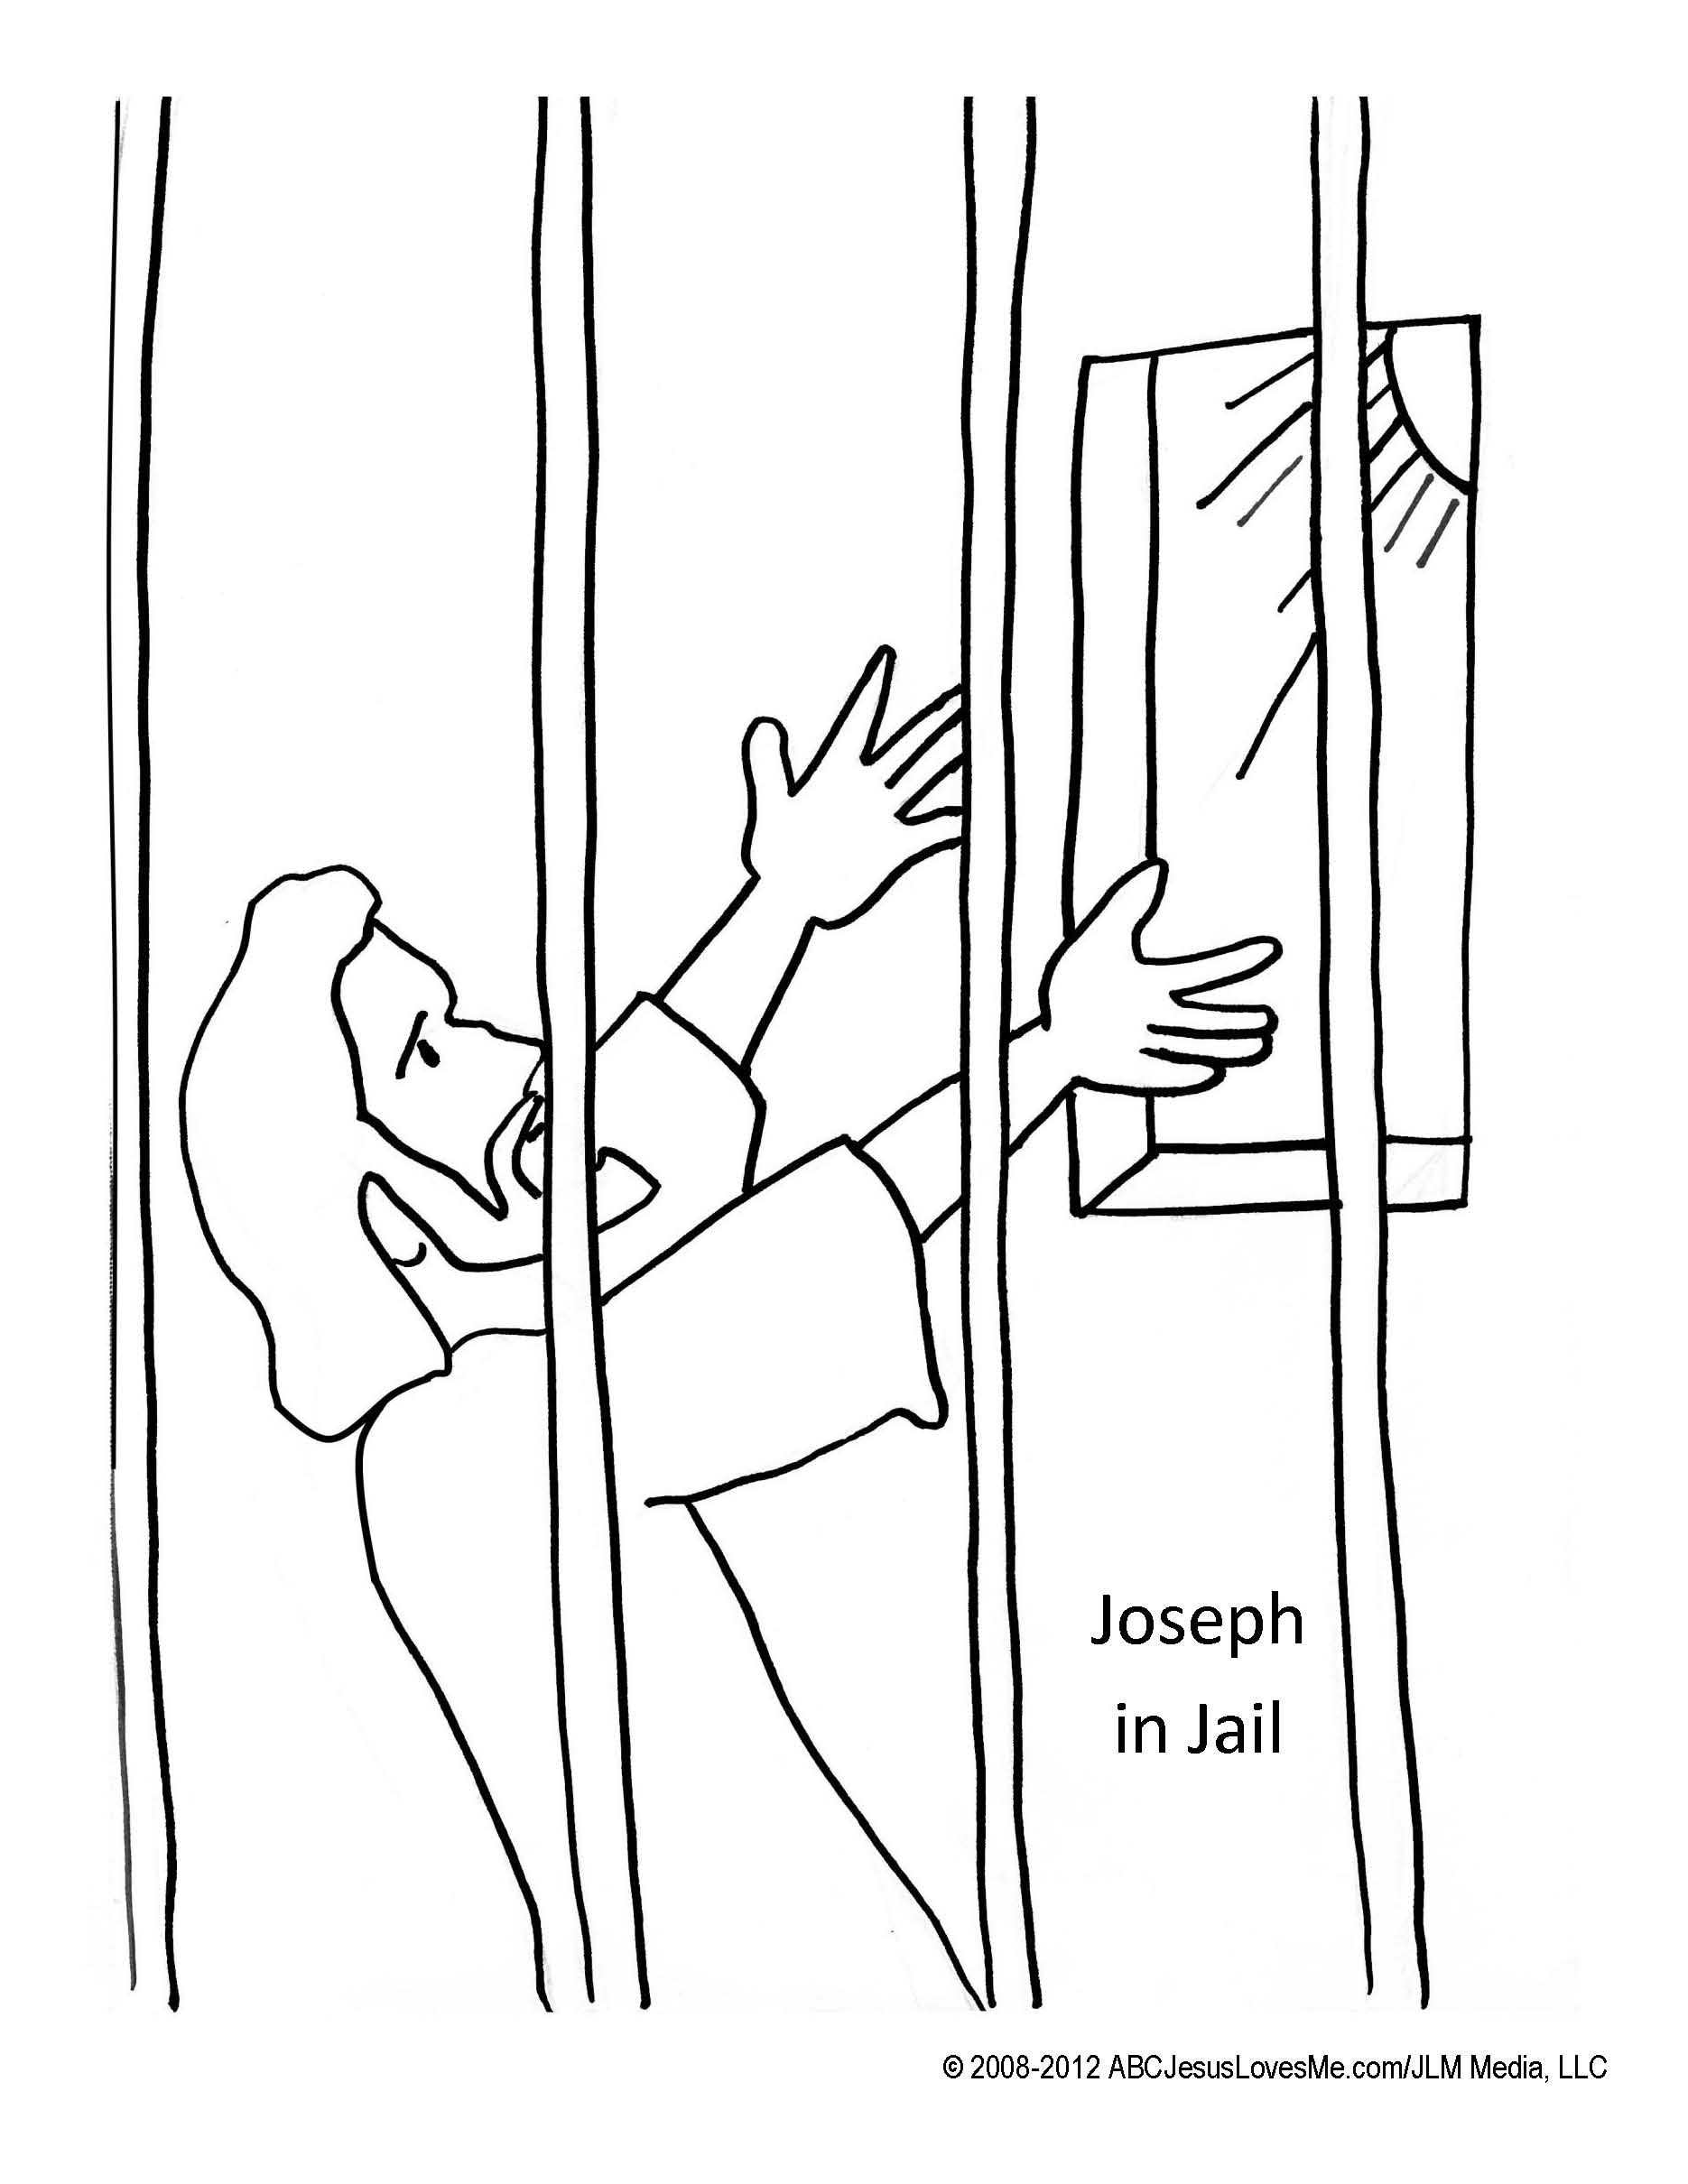 May 17 18 joseph in jail glue paper onto bars for Joseph in jail coloring page